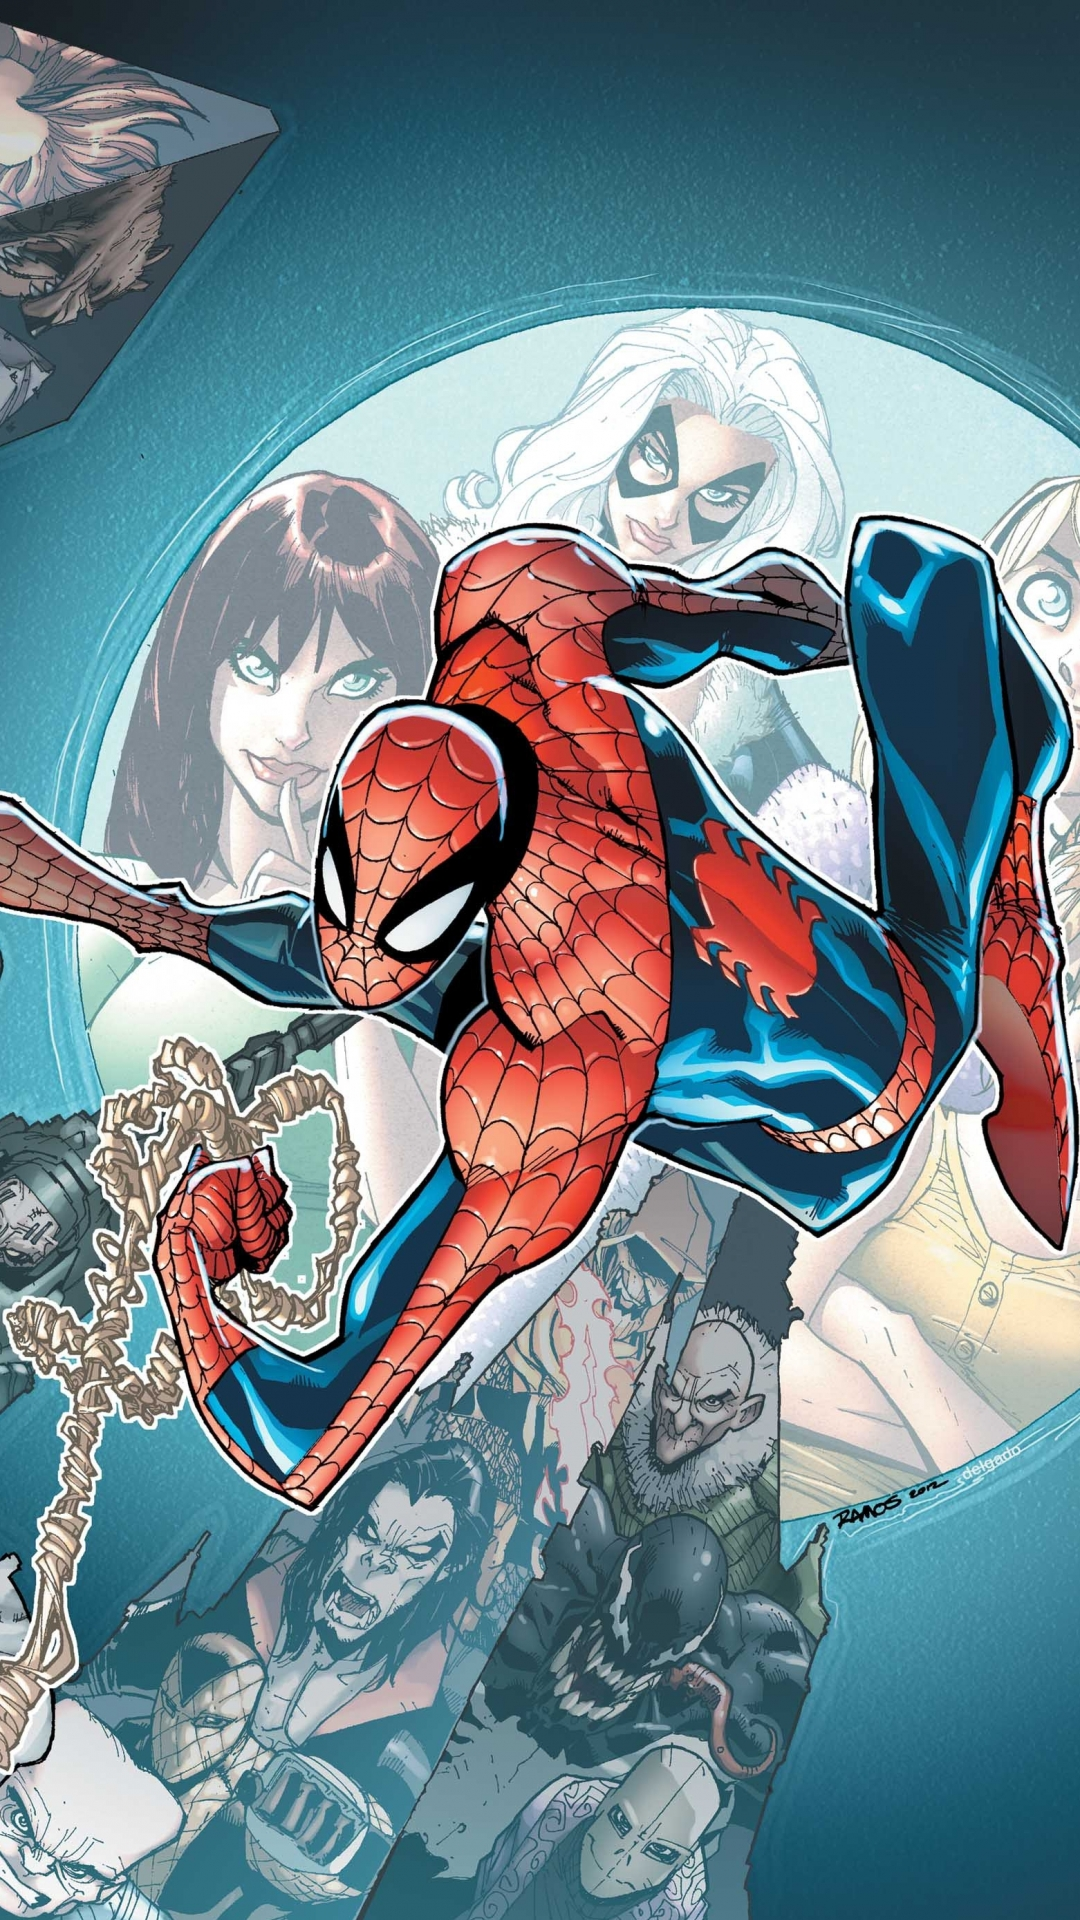 Comics Spider Man 1080x1920 Wallpaper Id 482550 Mobile Abyss